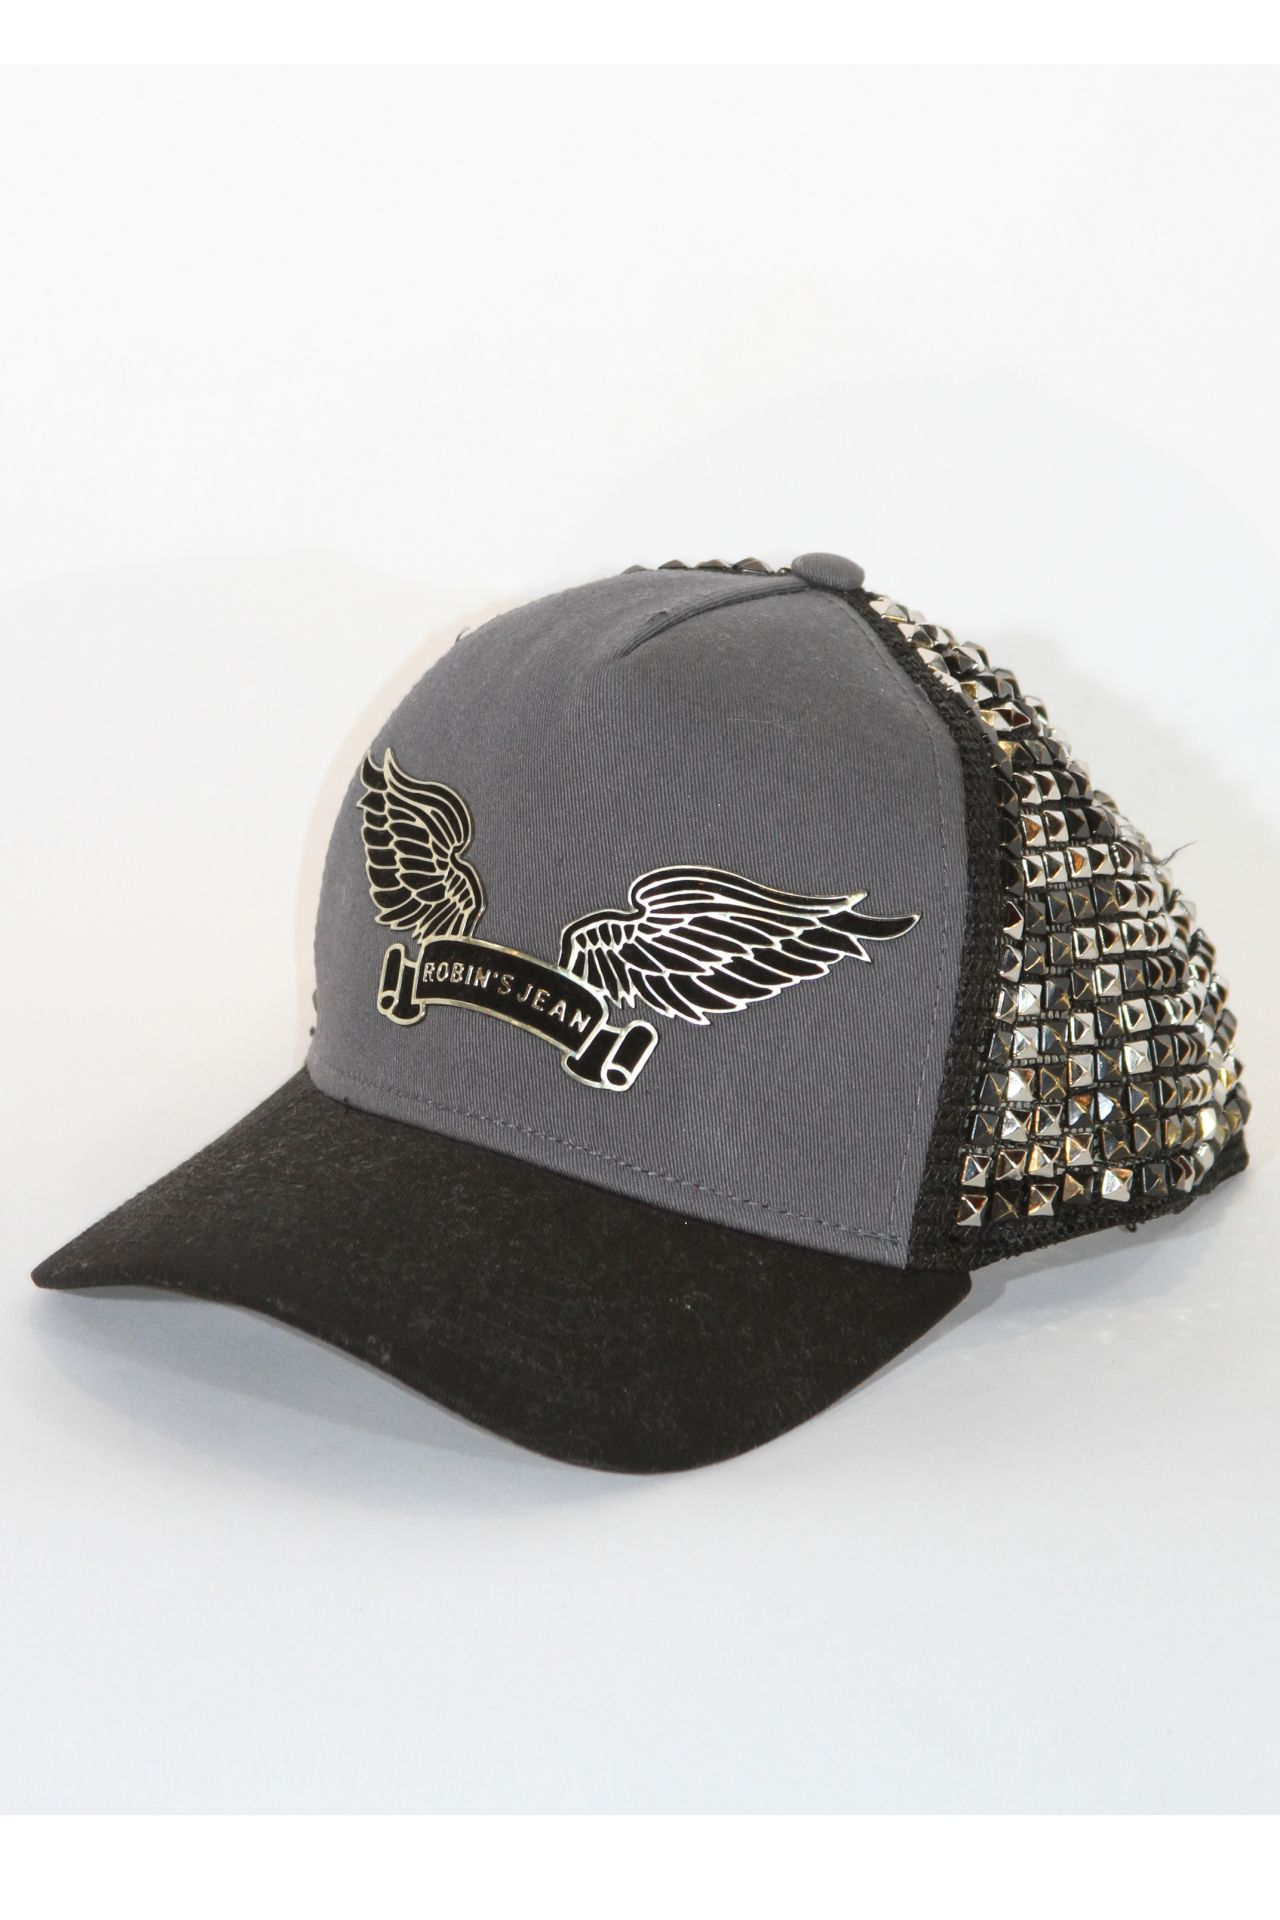 FULLY STUDDED CAP IN CHARCOAL WITH NICKEL AND BLACK PYRAMIDS